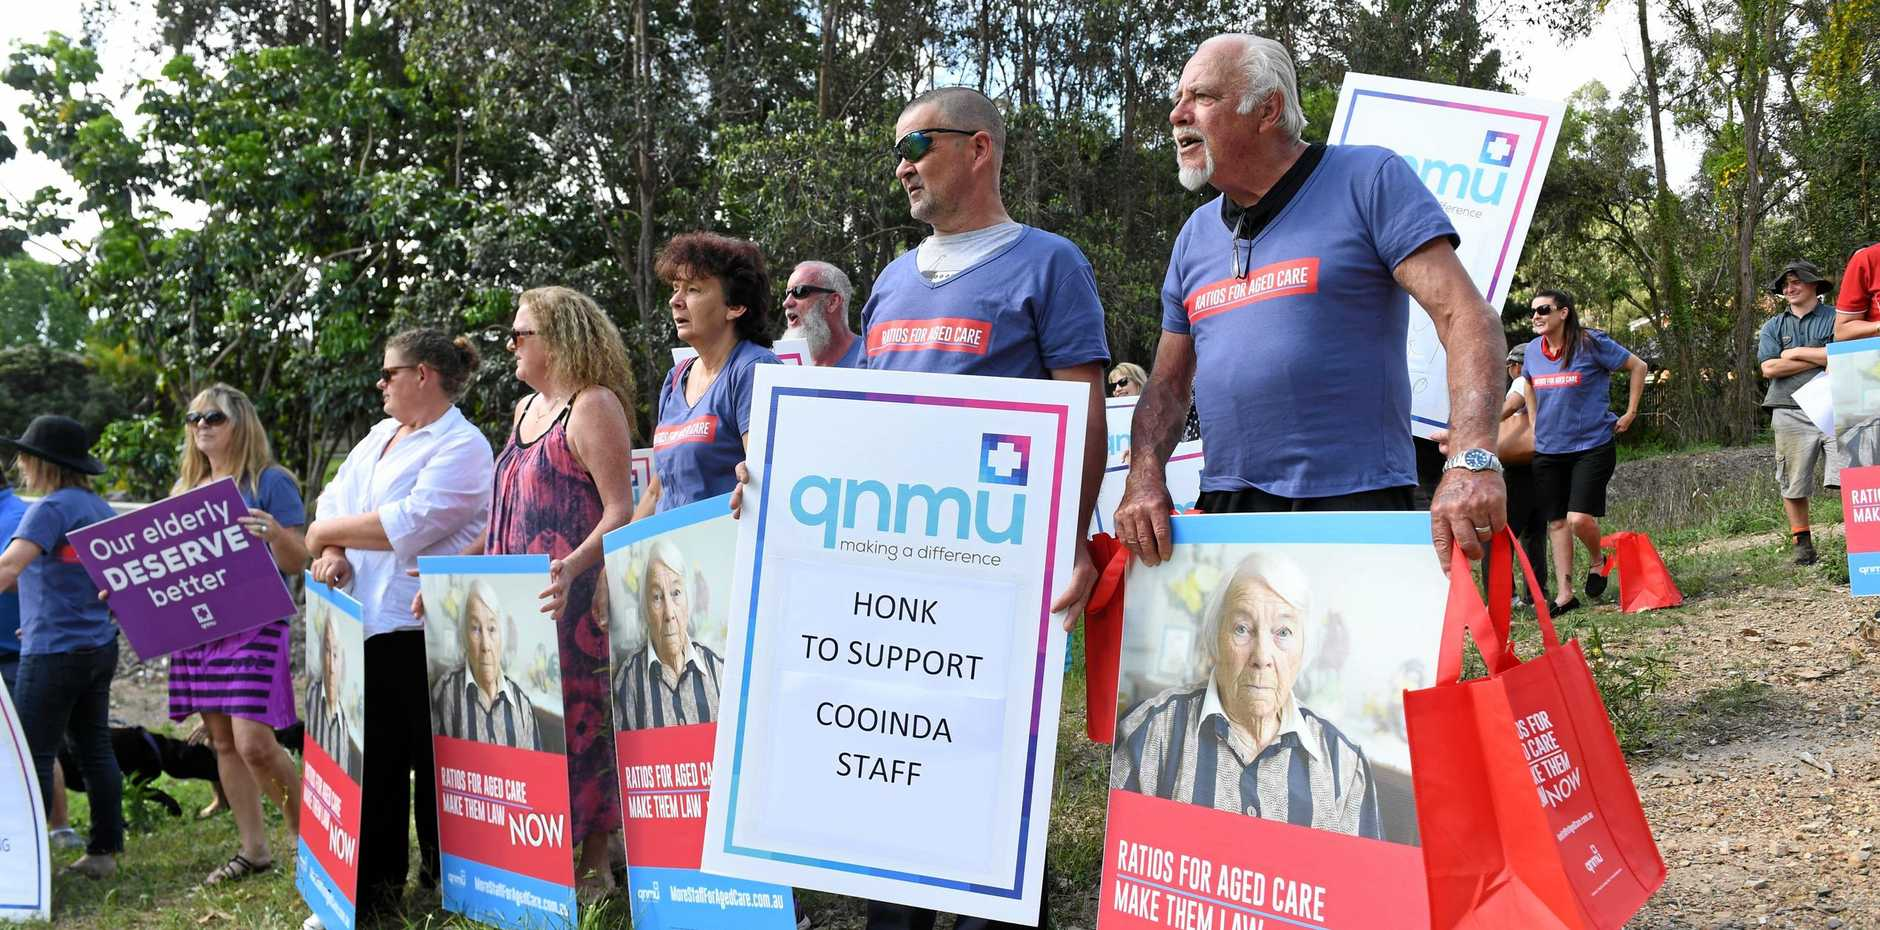 Cooinda nurses and carers rally for better conditions.